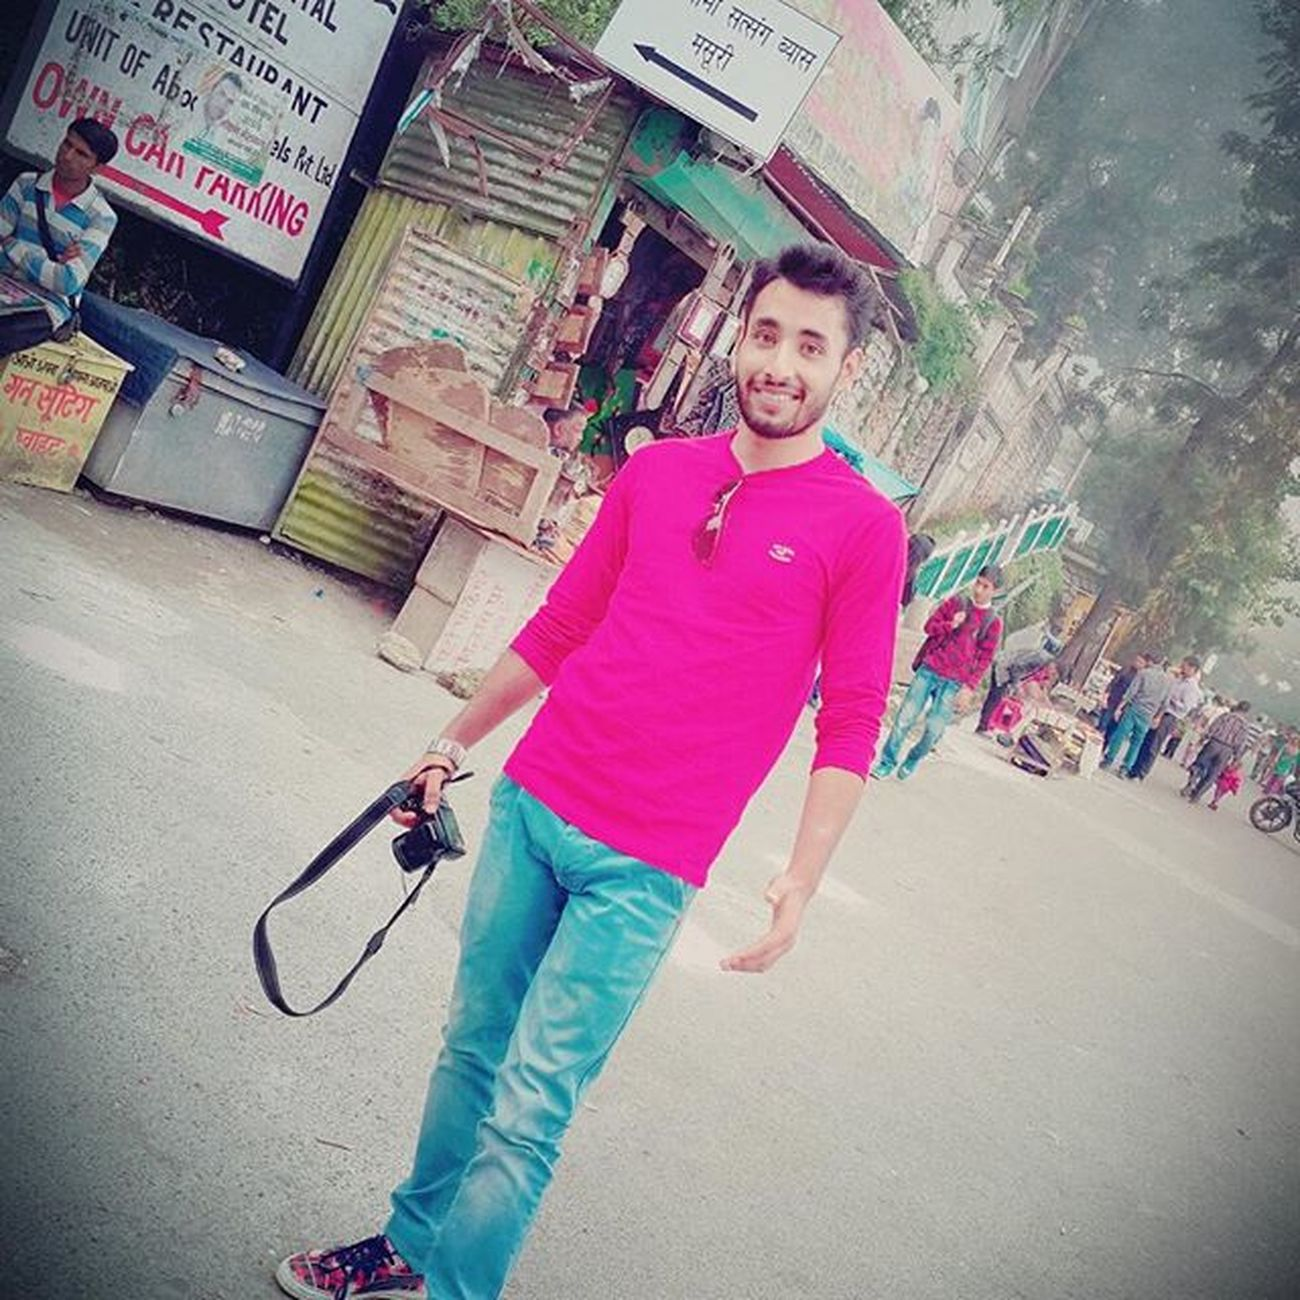 MaLl_rOad_mussOrIe MUssOrIe_trIp ClG_frIendX